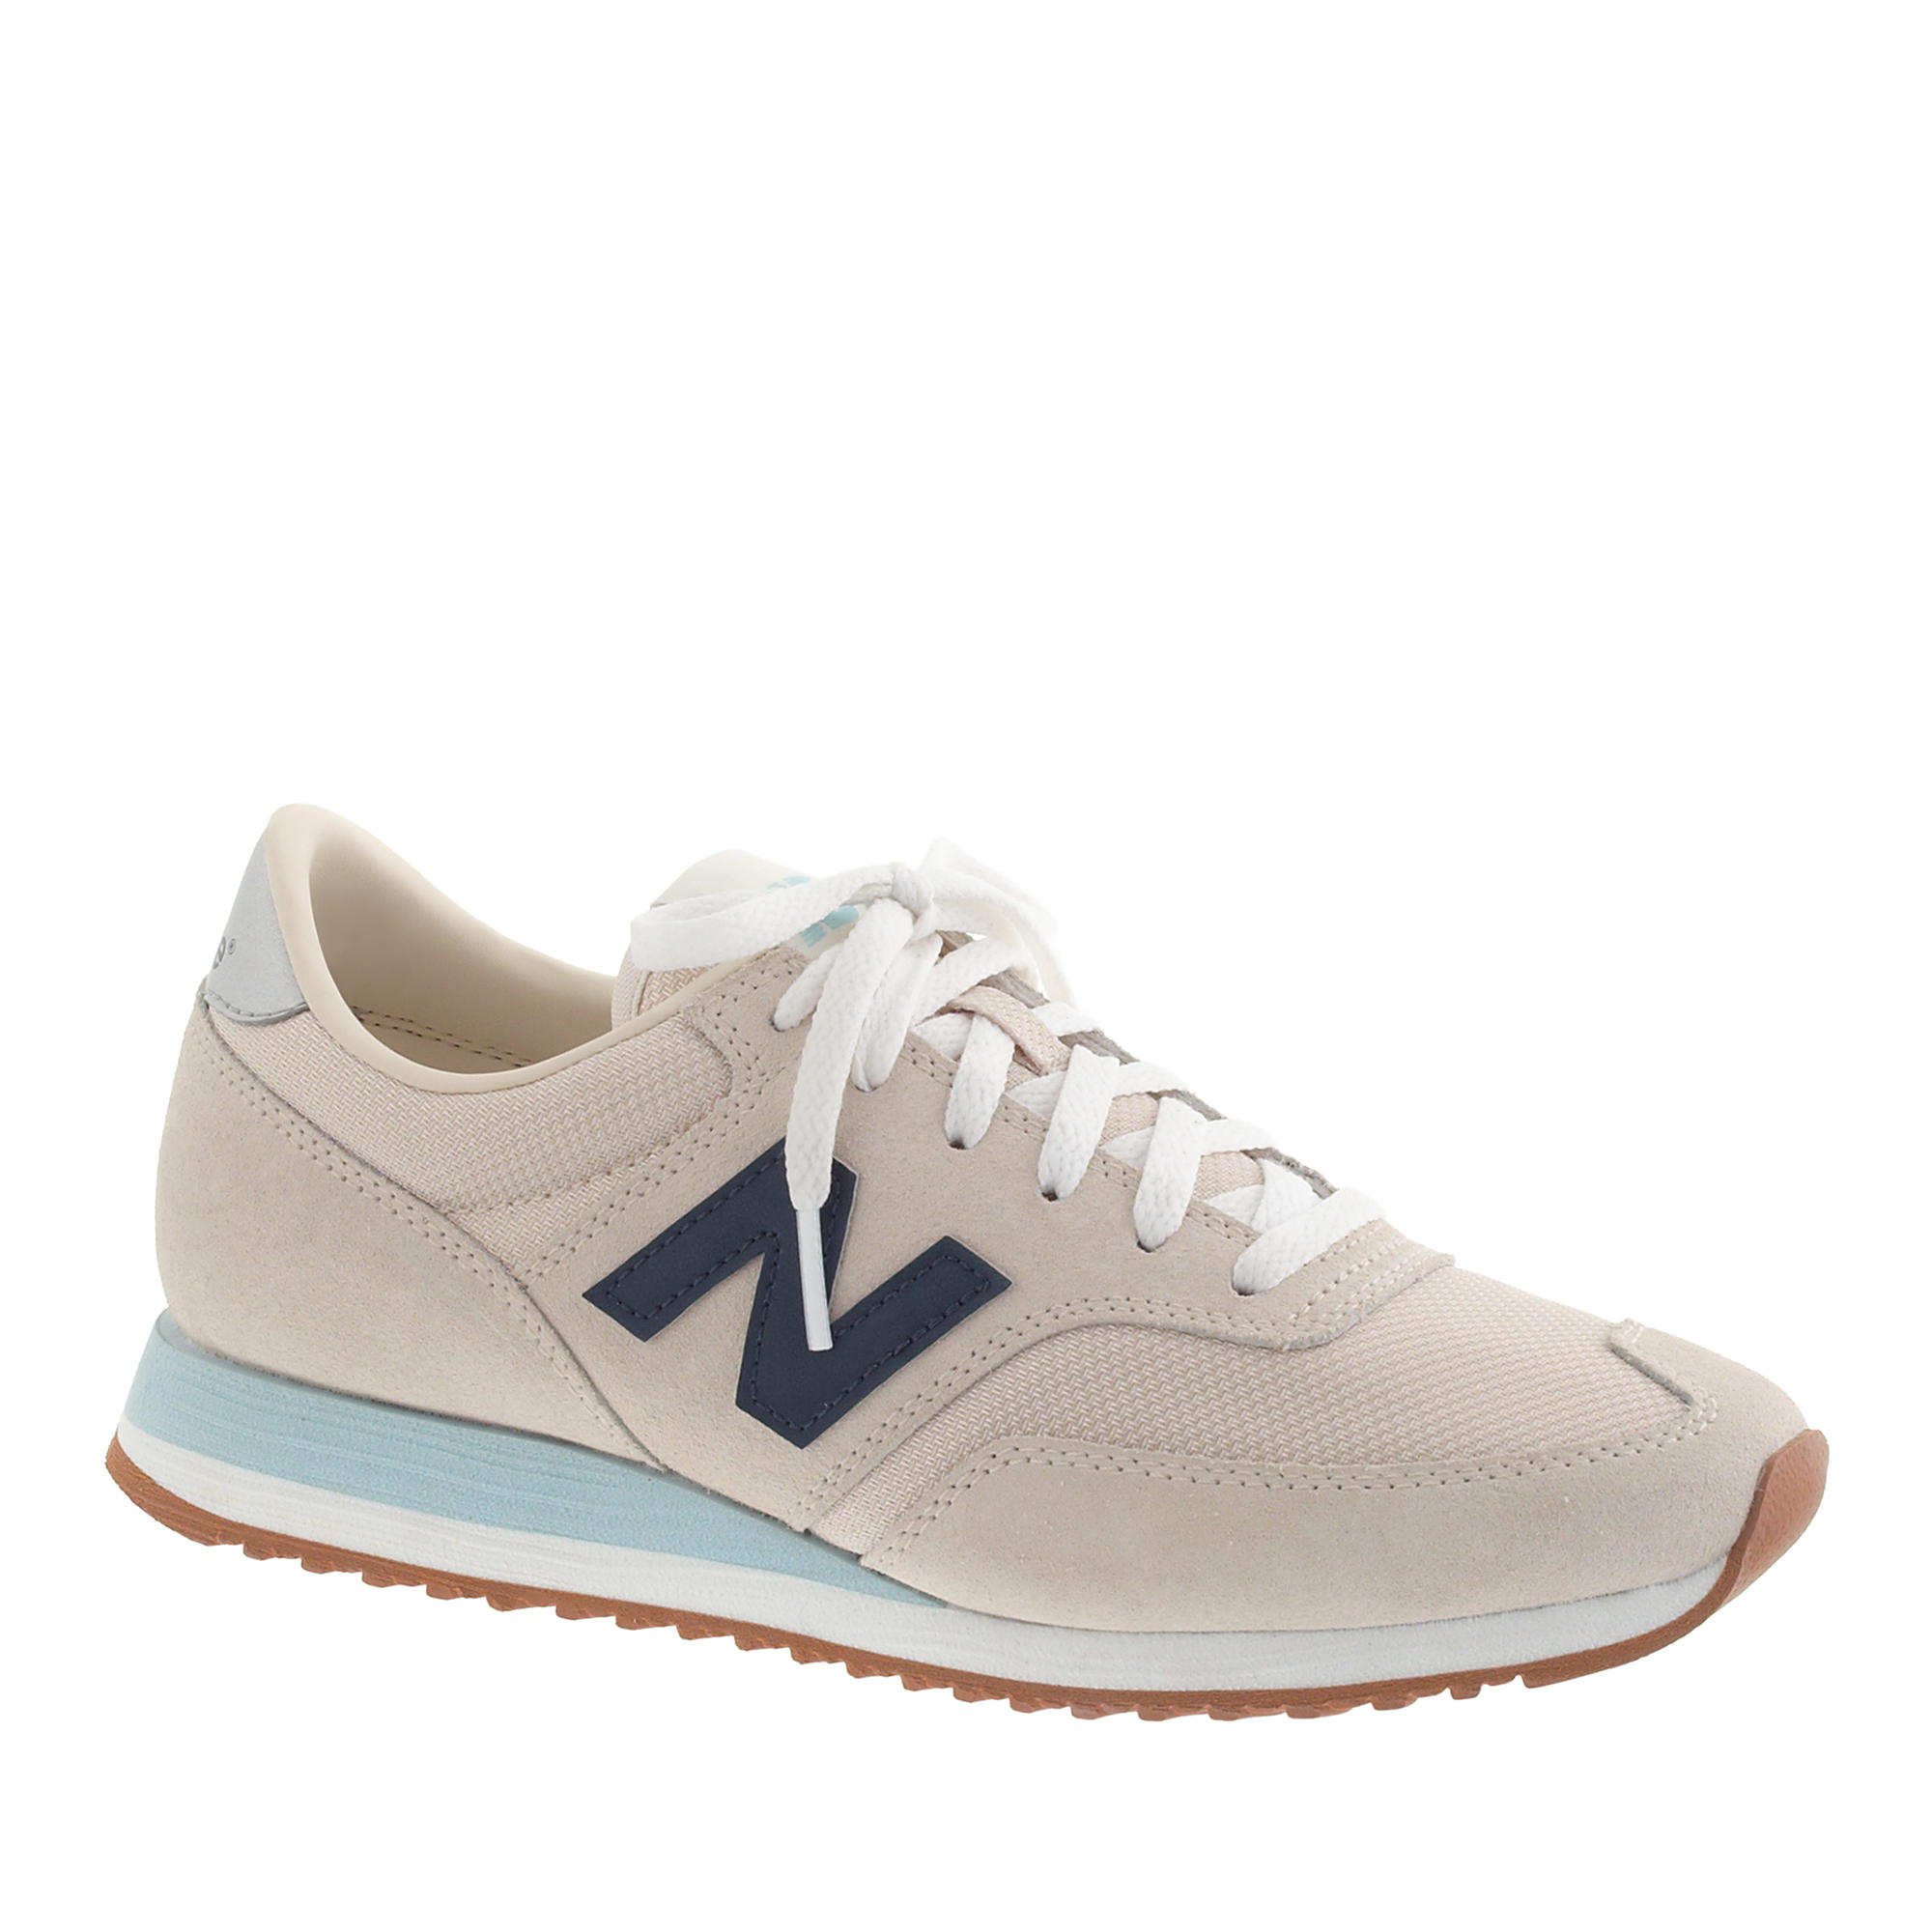 0a61fc1ffbc3 Lyst - J.Crew Women s New Balance 620 Sneakers in Natural